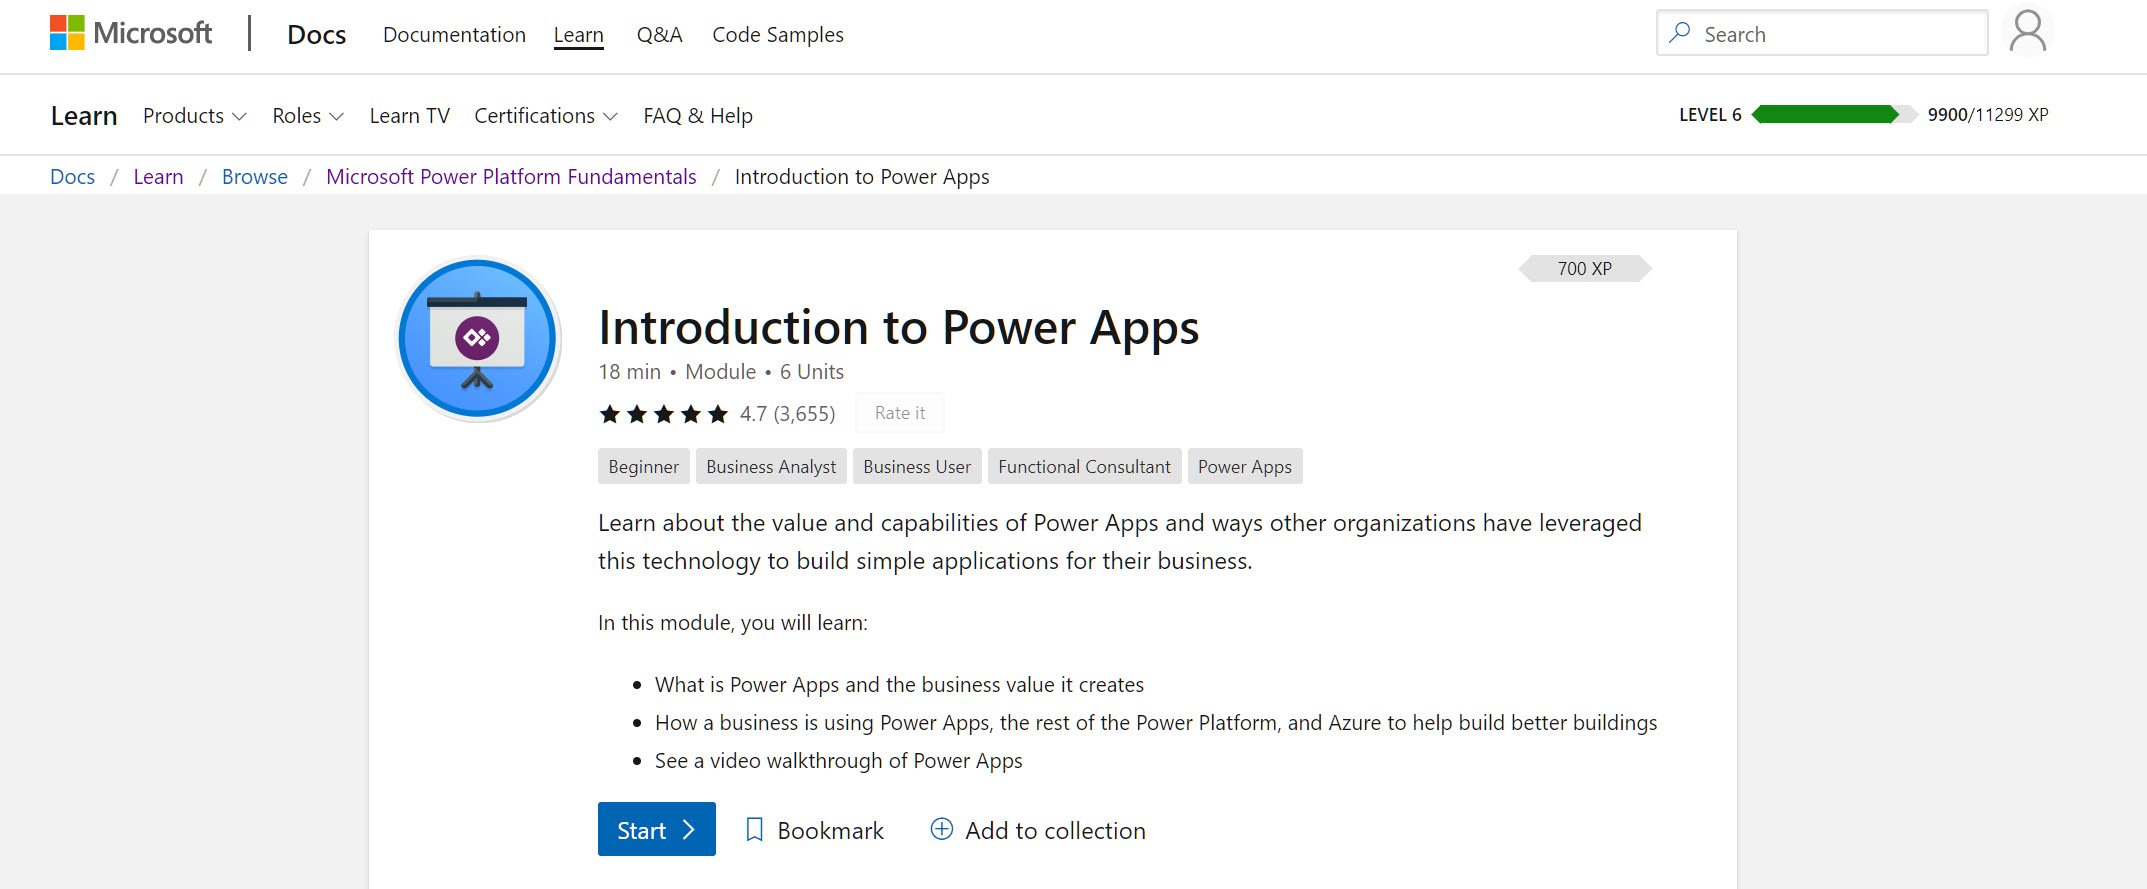 How do I get certified in Power Apps